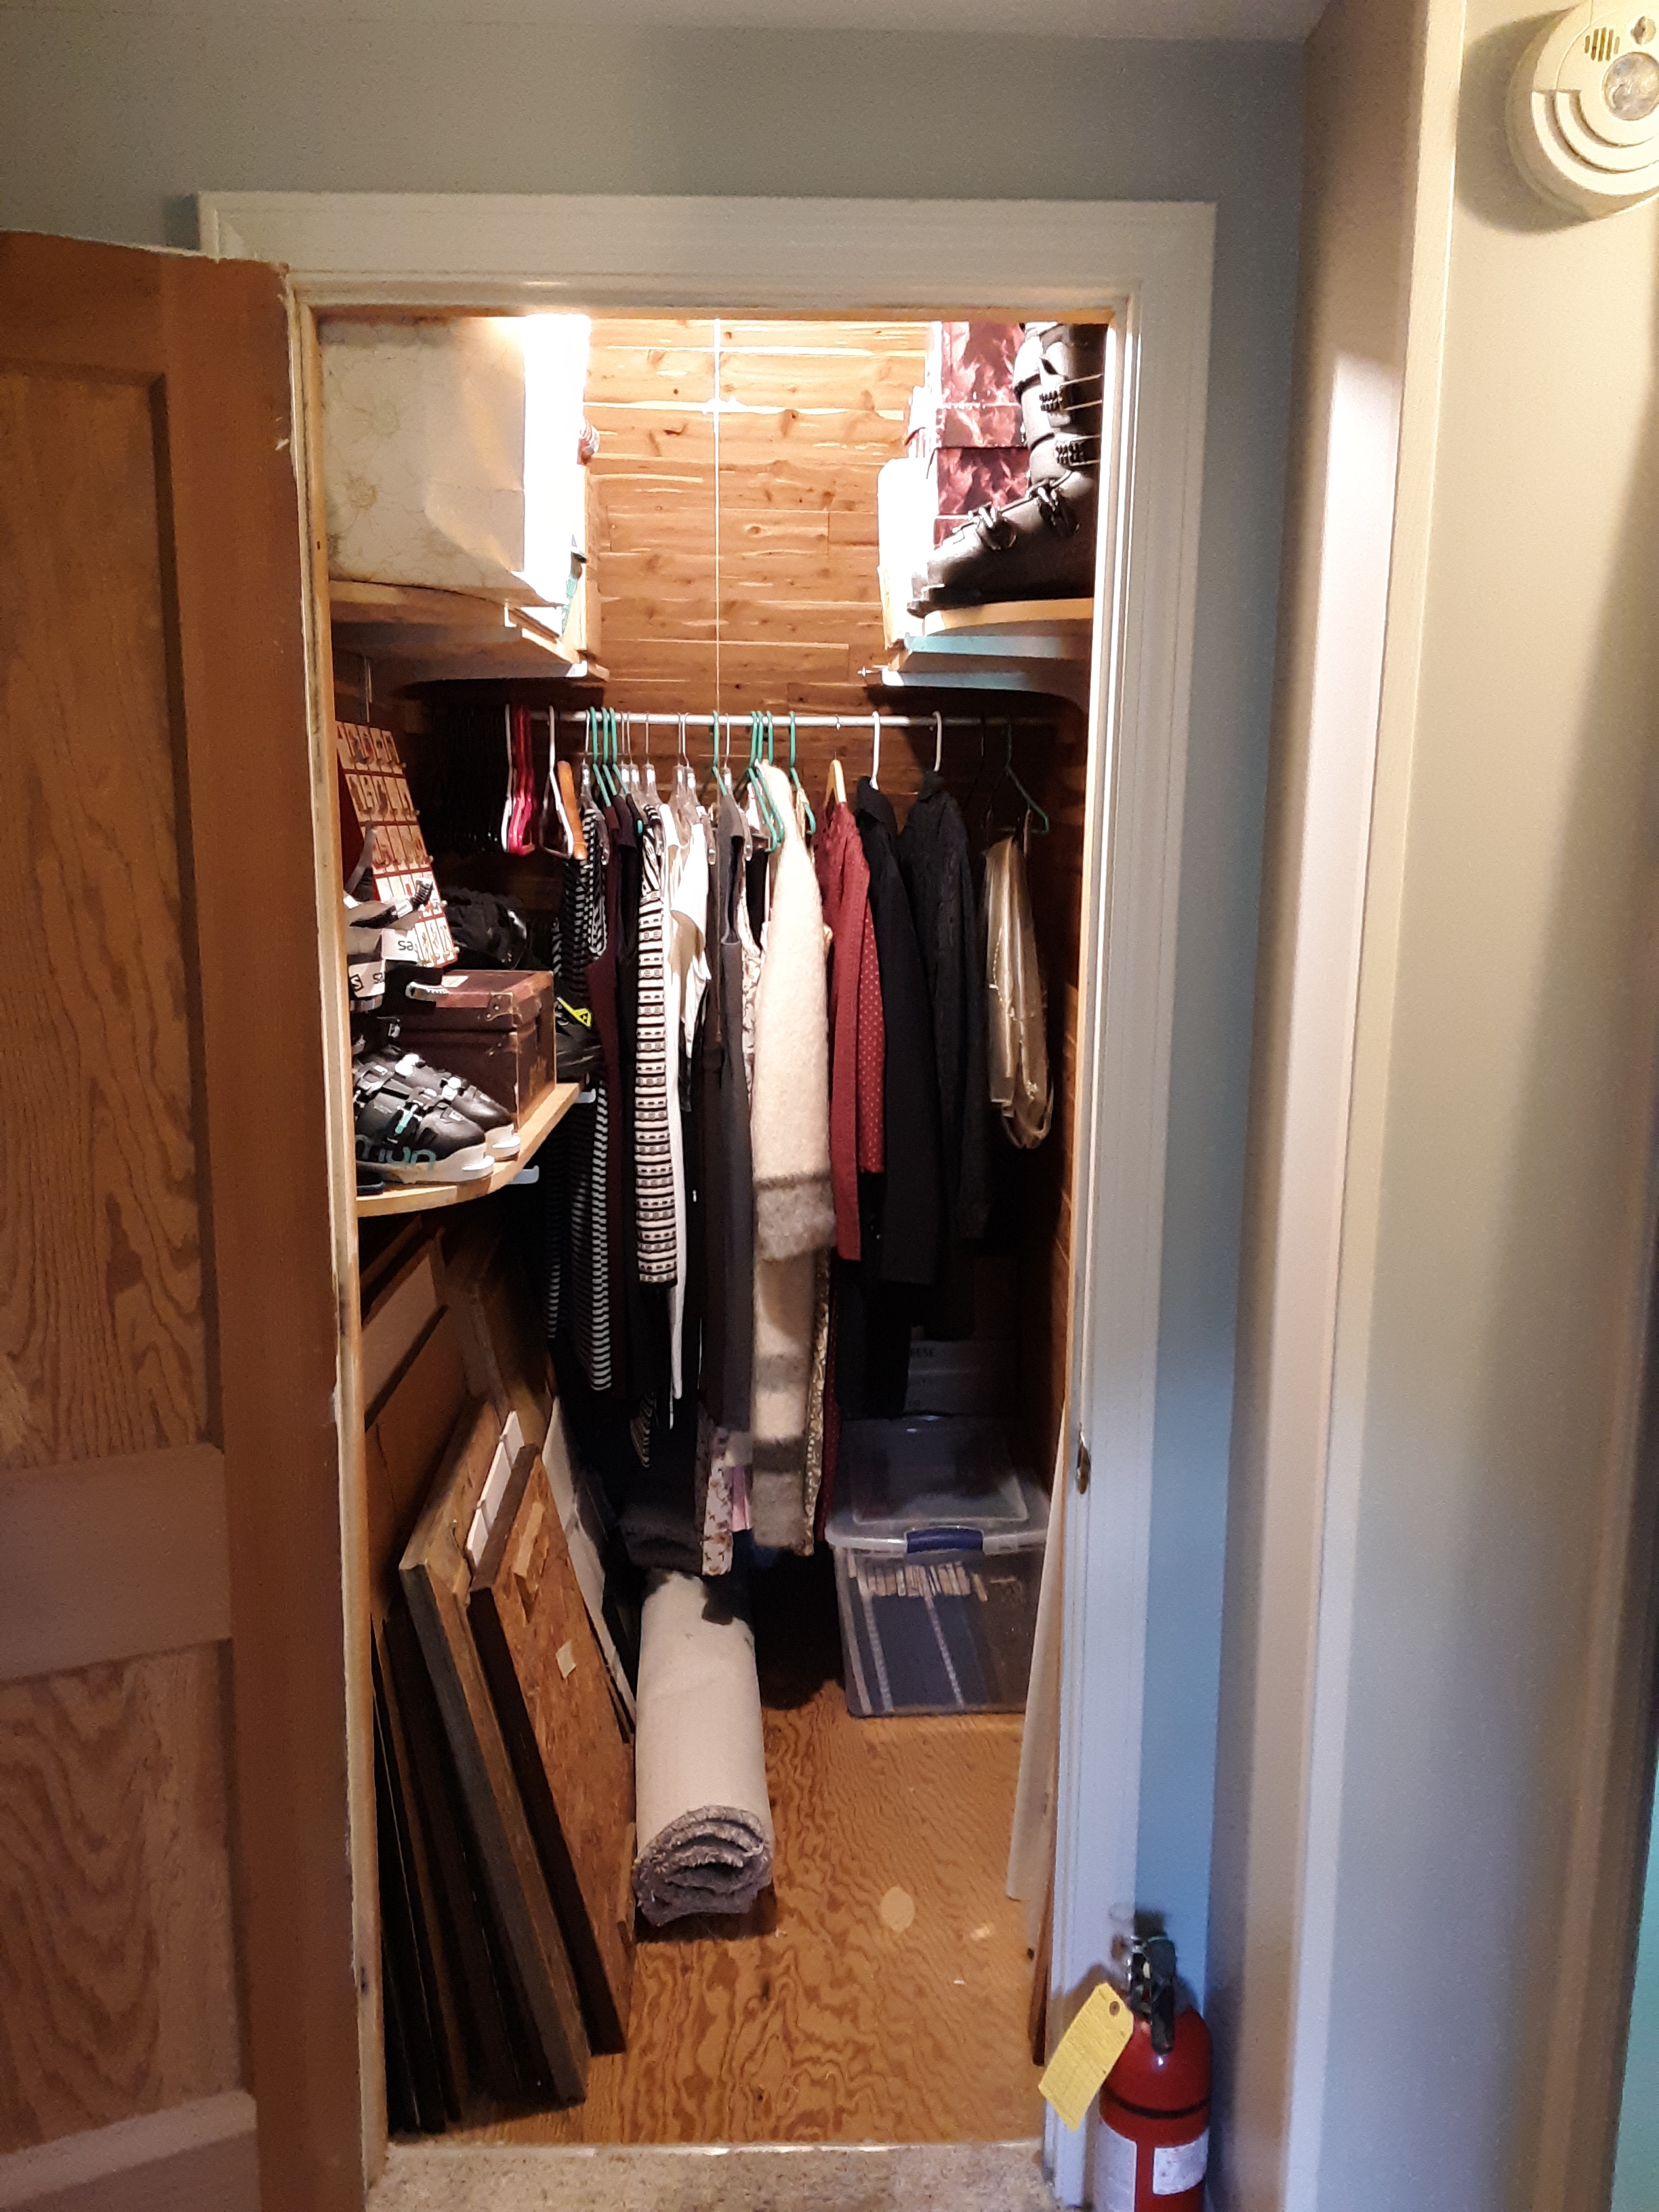 Now organized, the closet even had empty floor space!